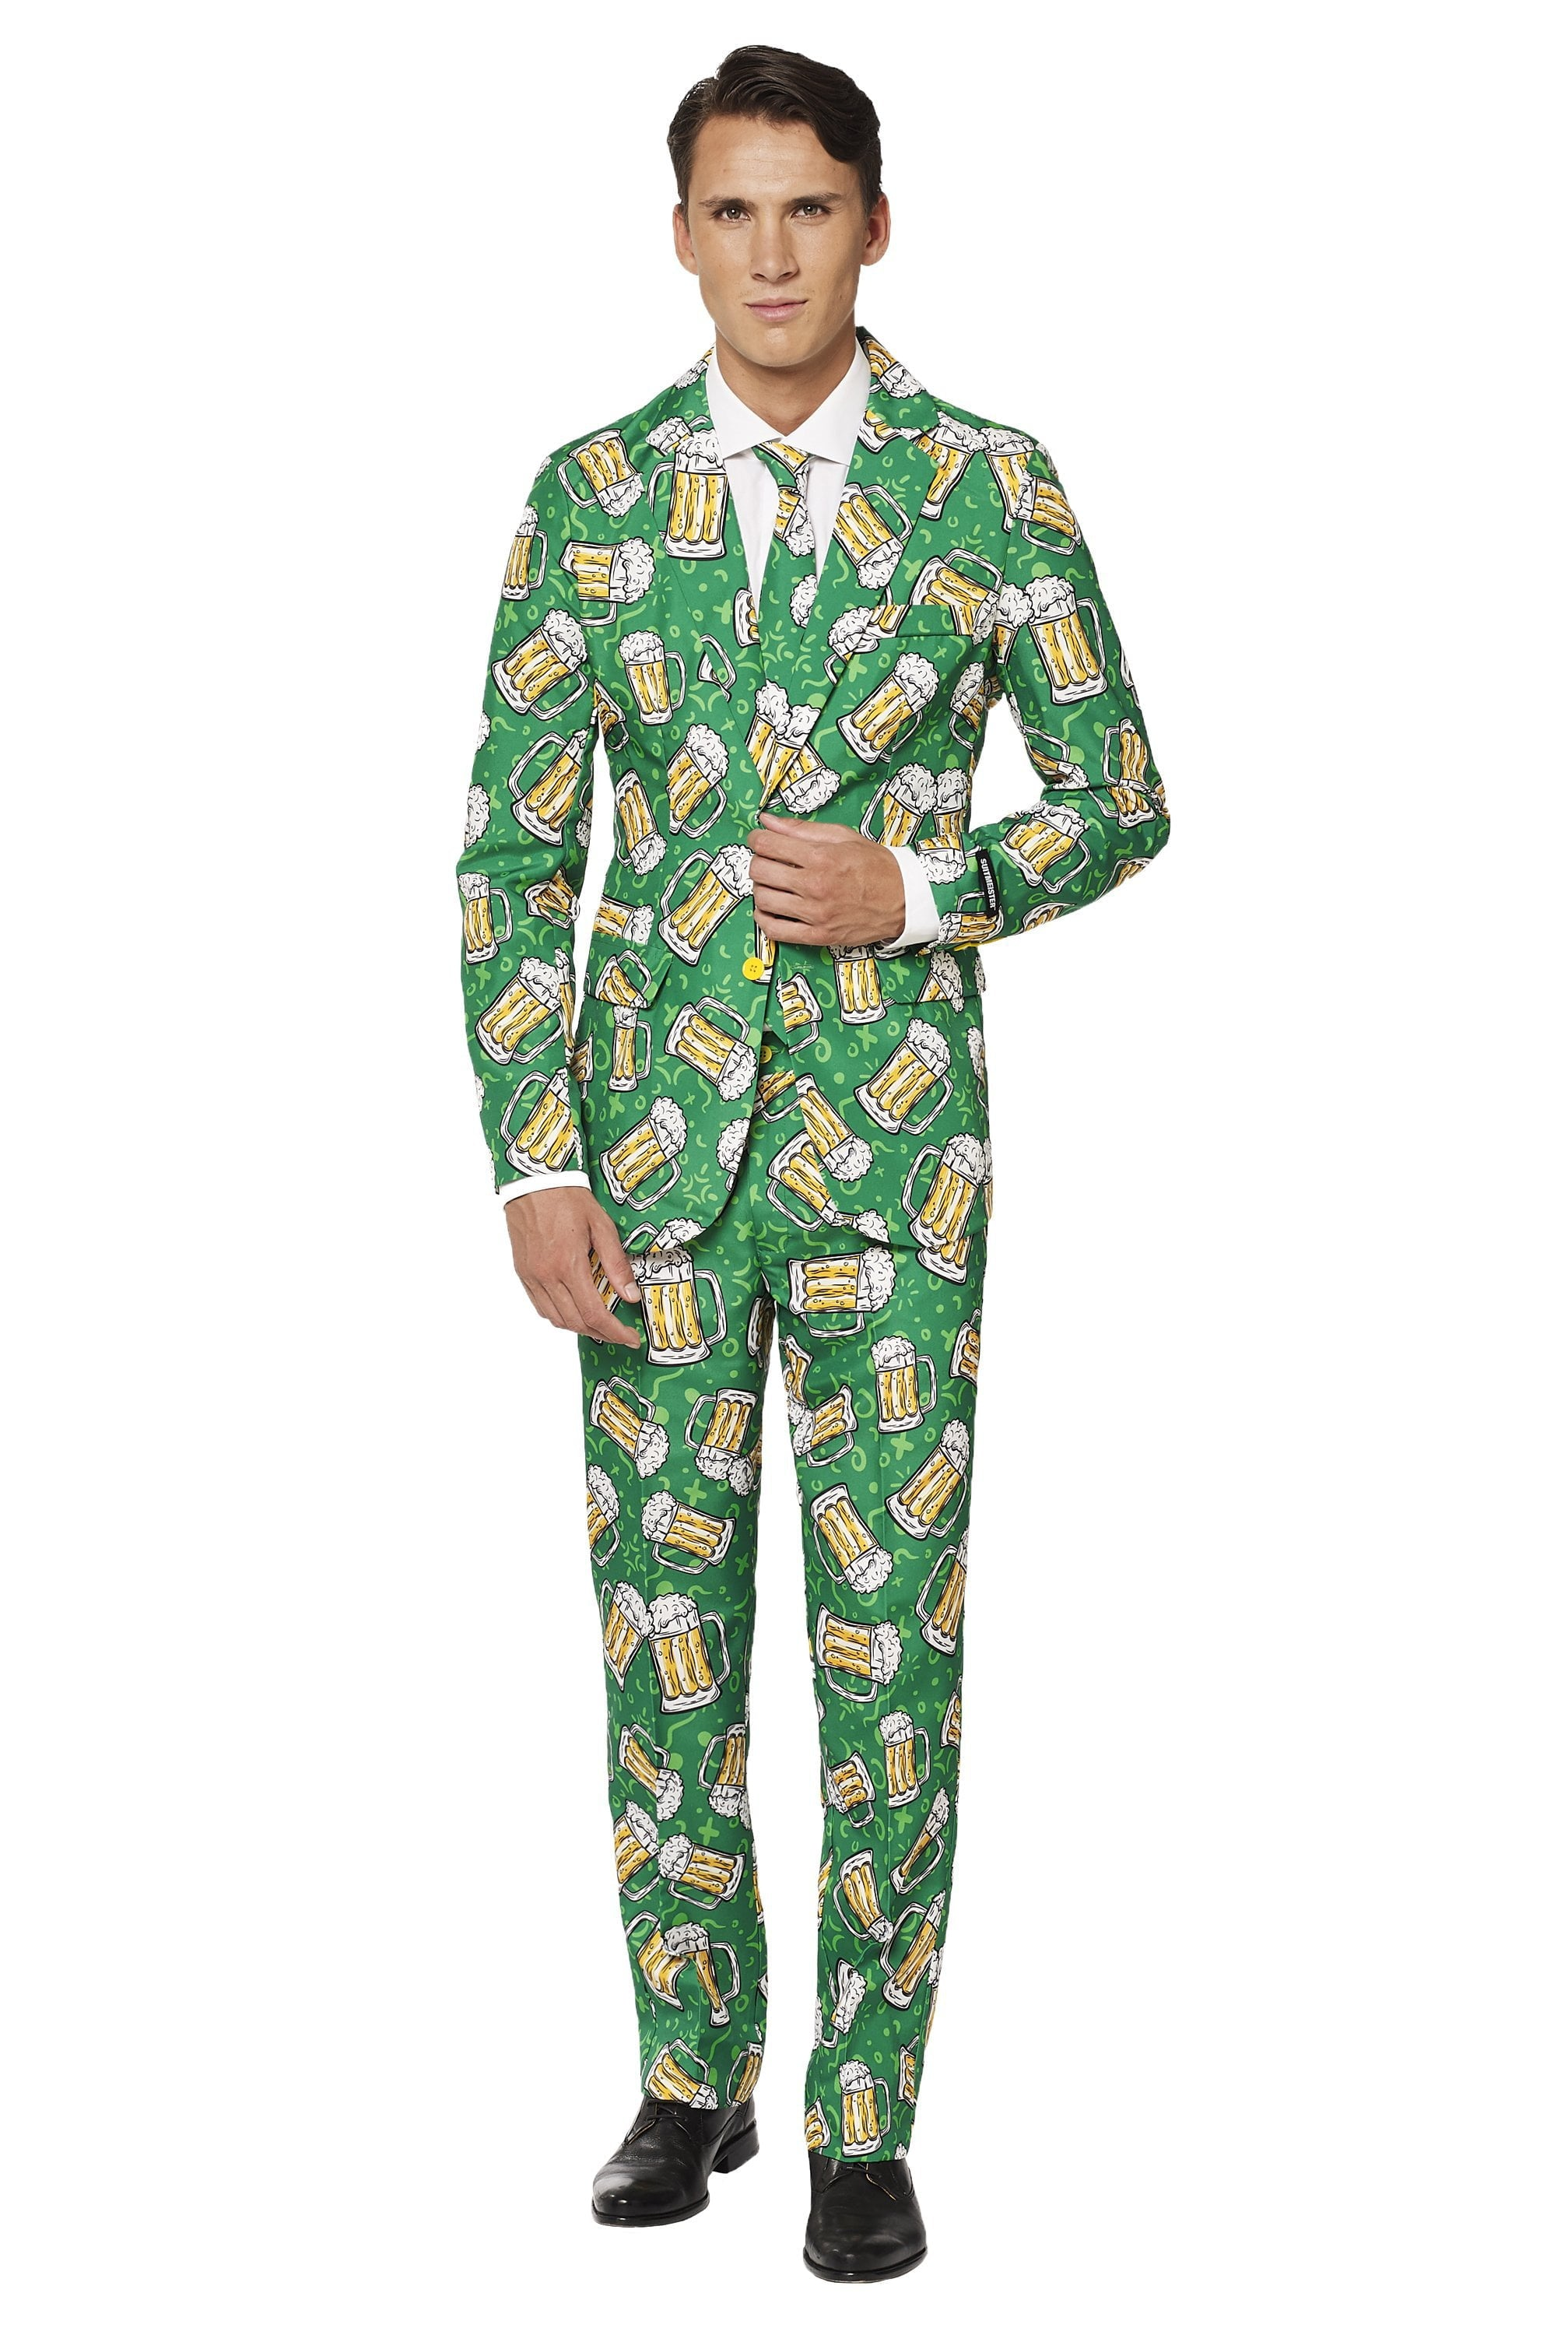 Suitmeister Beer Suit